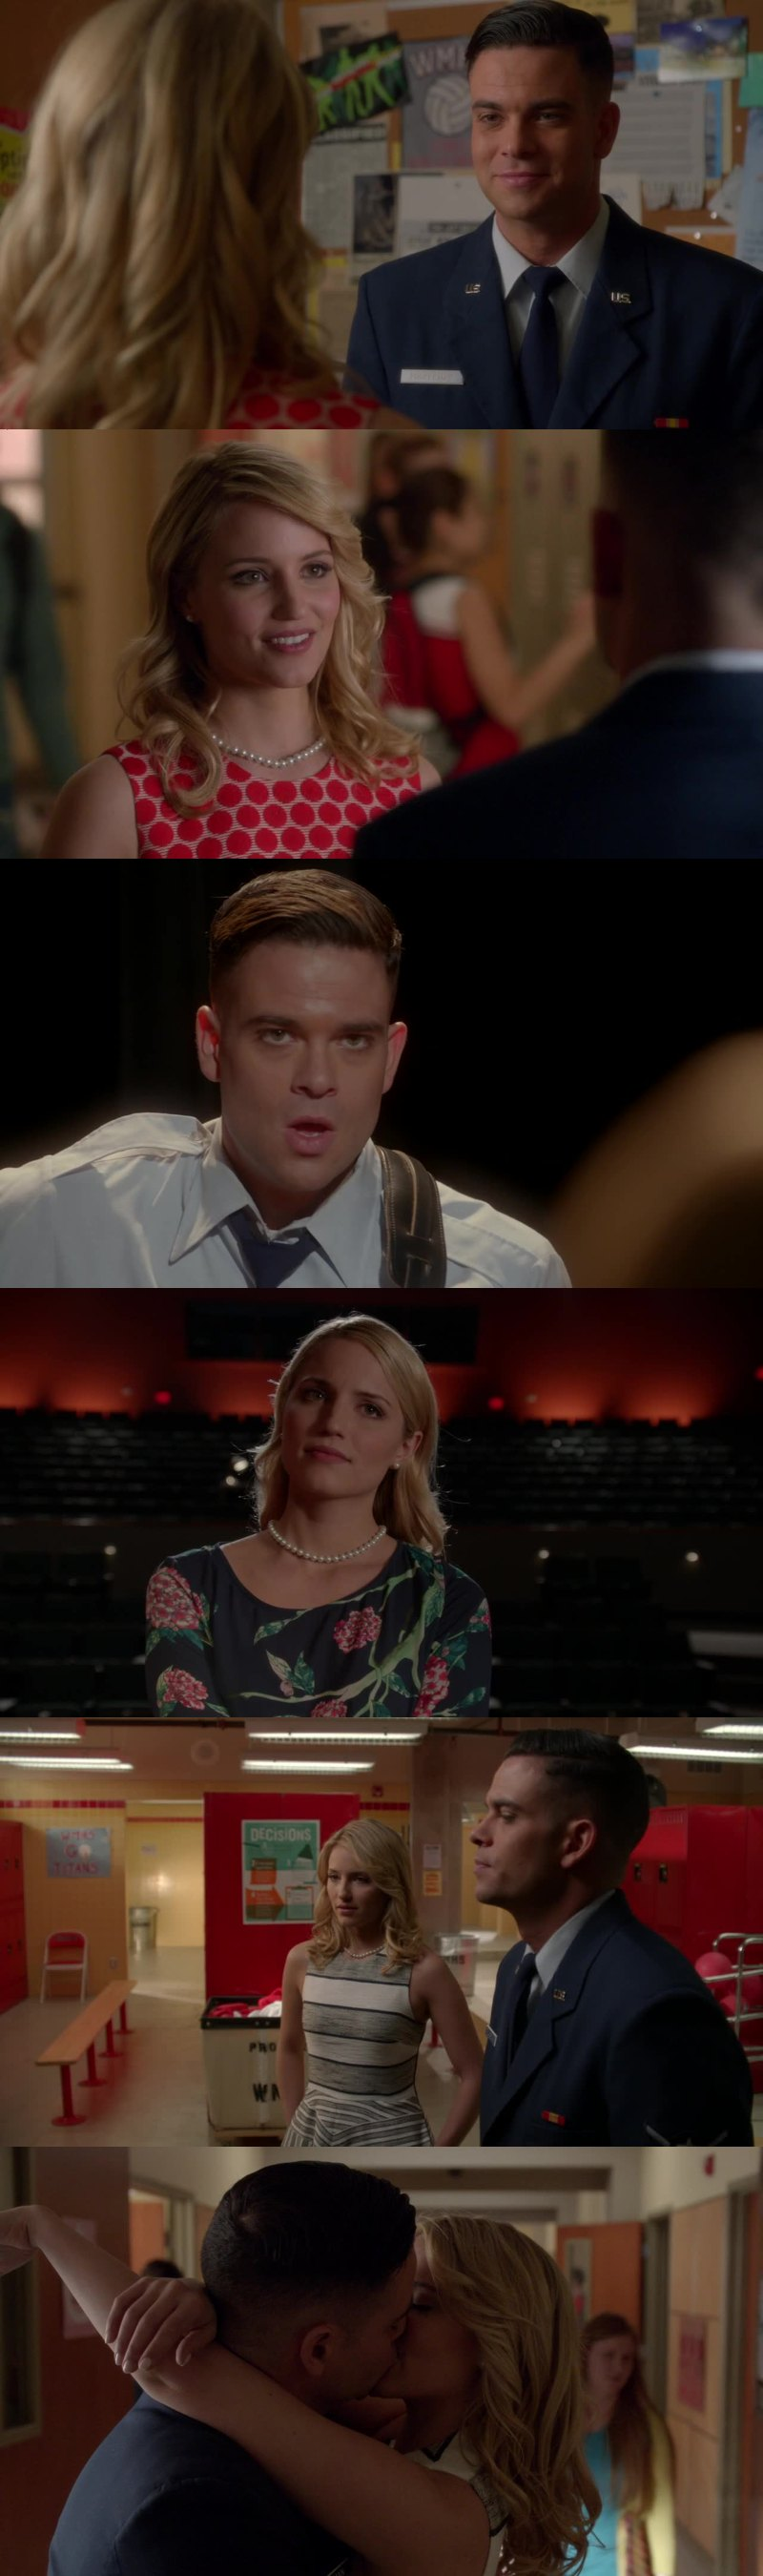 Quick is endgame, I shipp them since the season 1. Quinn and Puck are perfect.